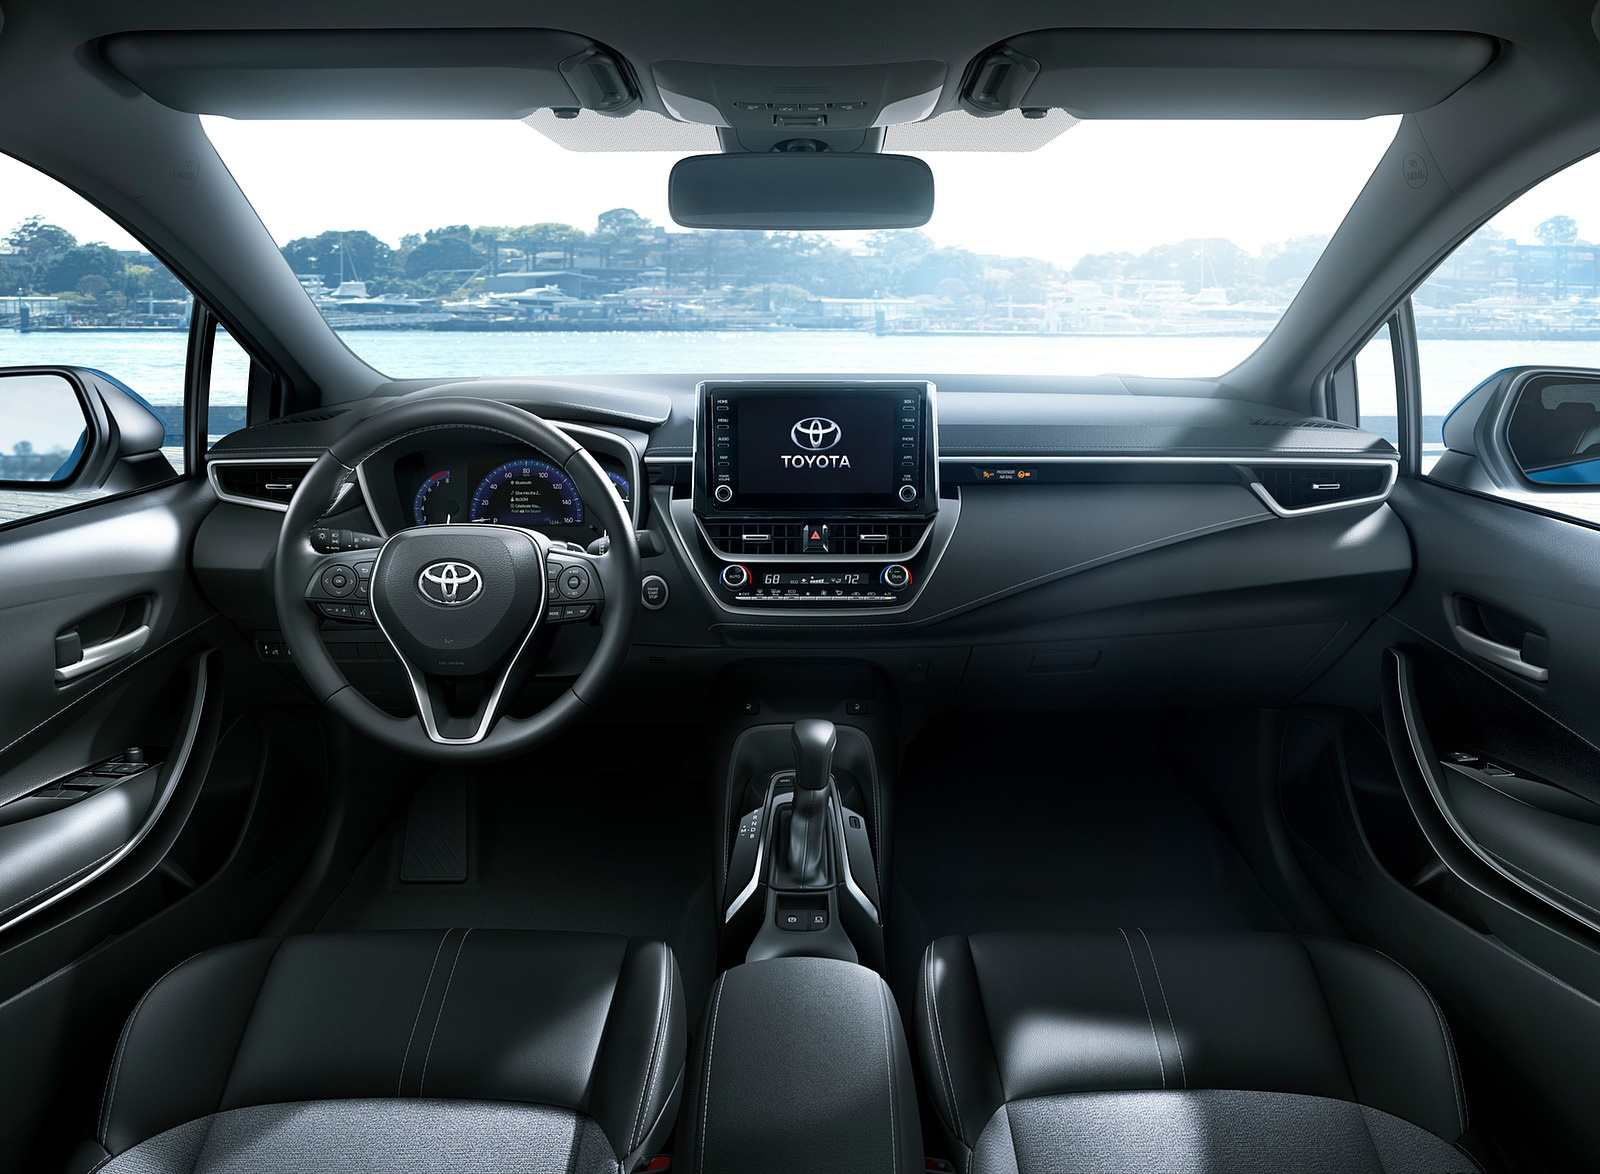 2019 Toyota Corolla Hatchback Interior Cockpit Wallpapers #19 of 75